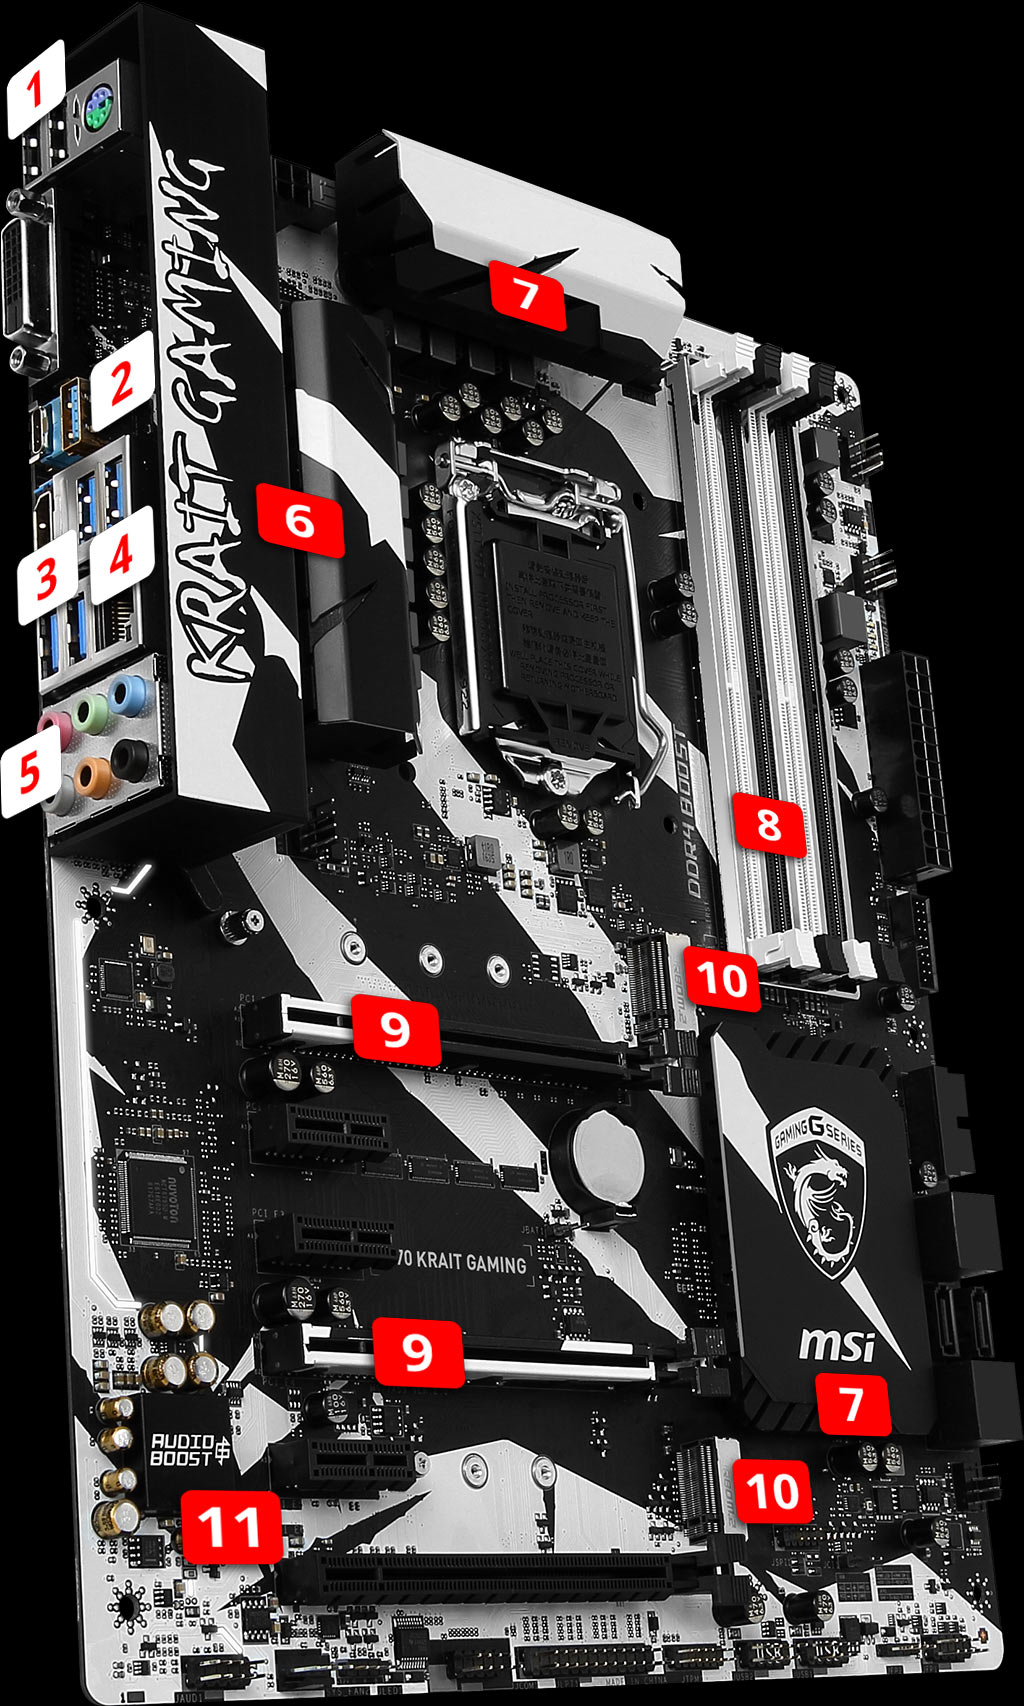 MSI Z270 KRAIT GAMING LGA1151 ATX Motherboard